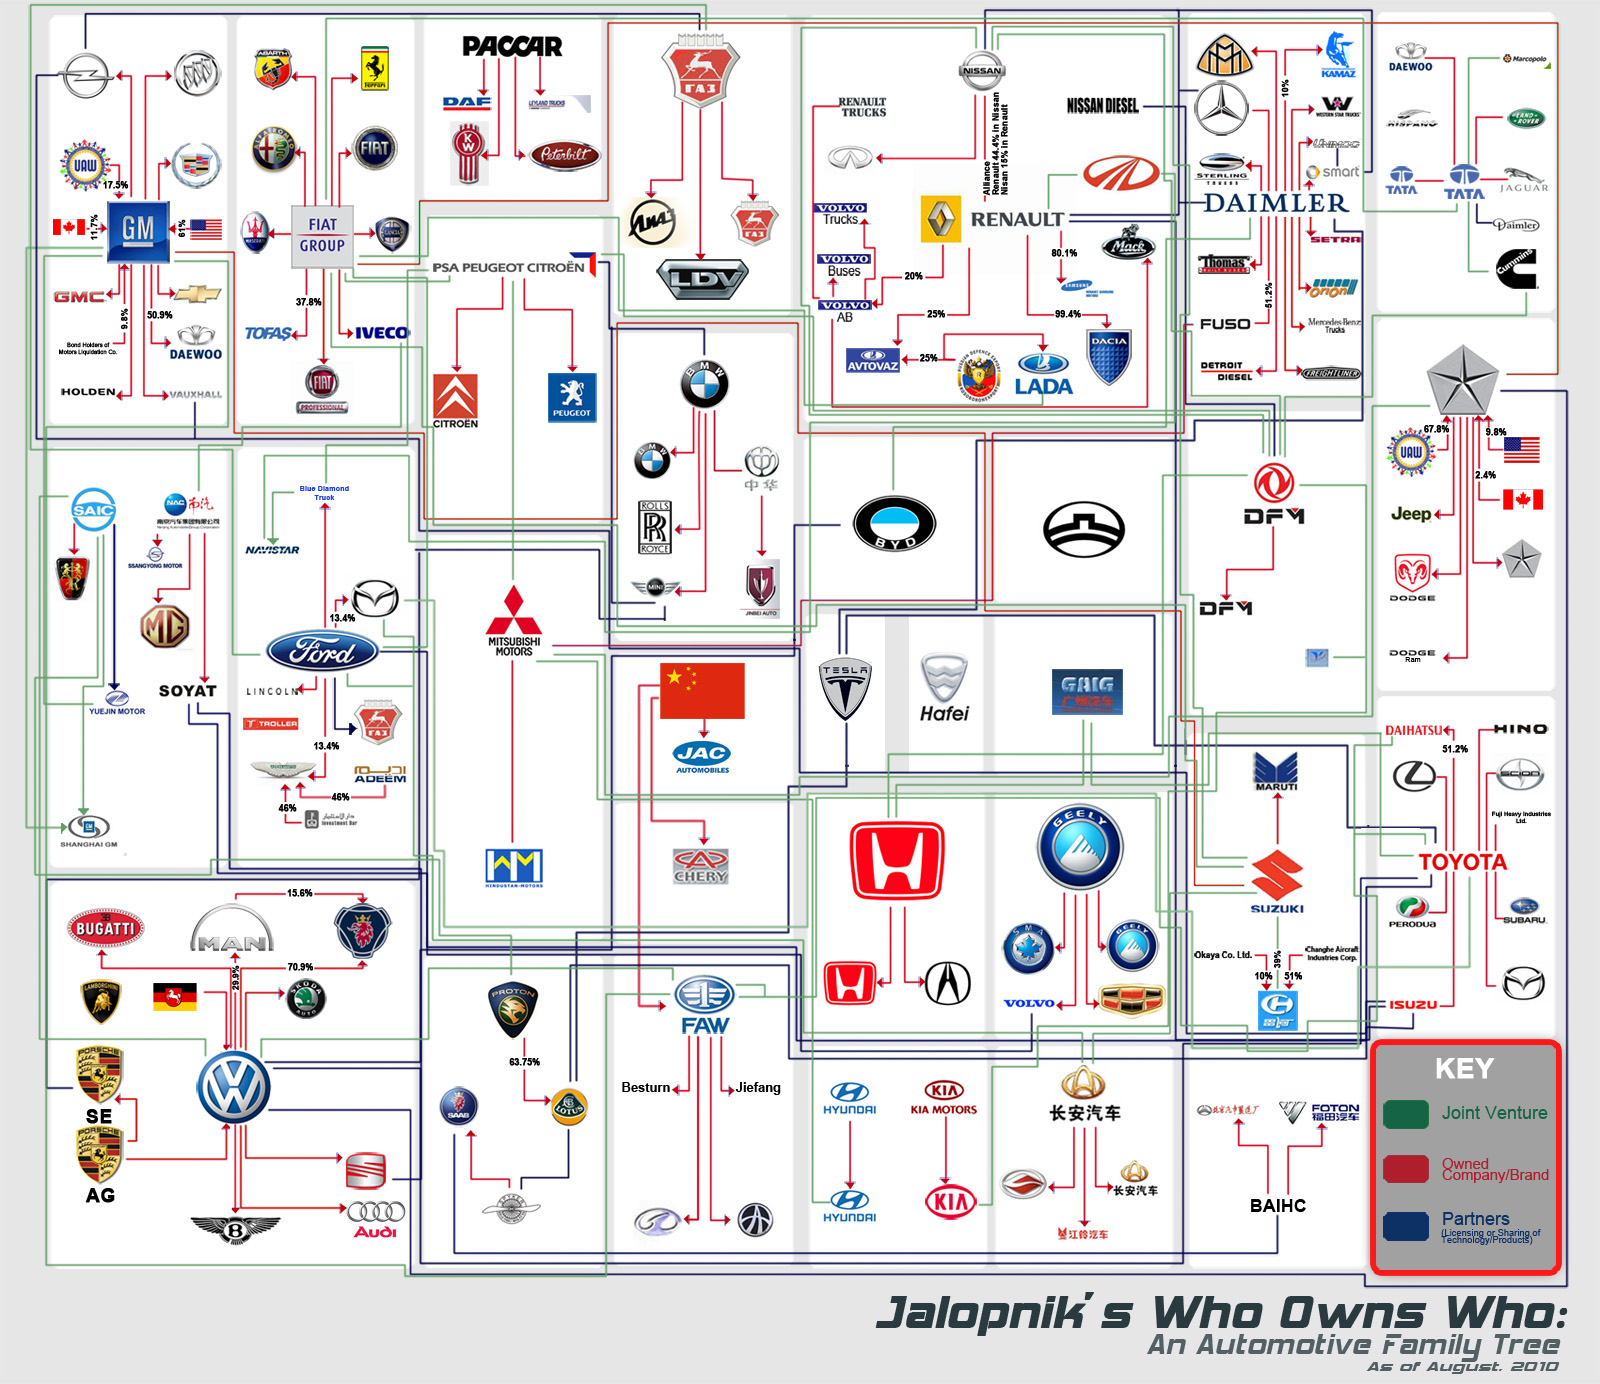 Car Makers 2010 Who Owns Who: An Automaker Family Tree - Jalopnik.com